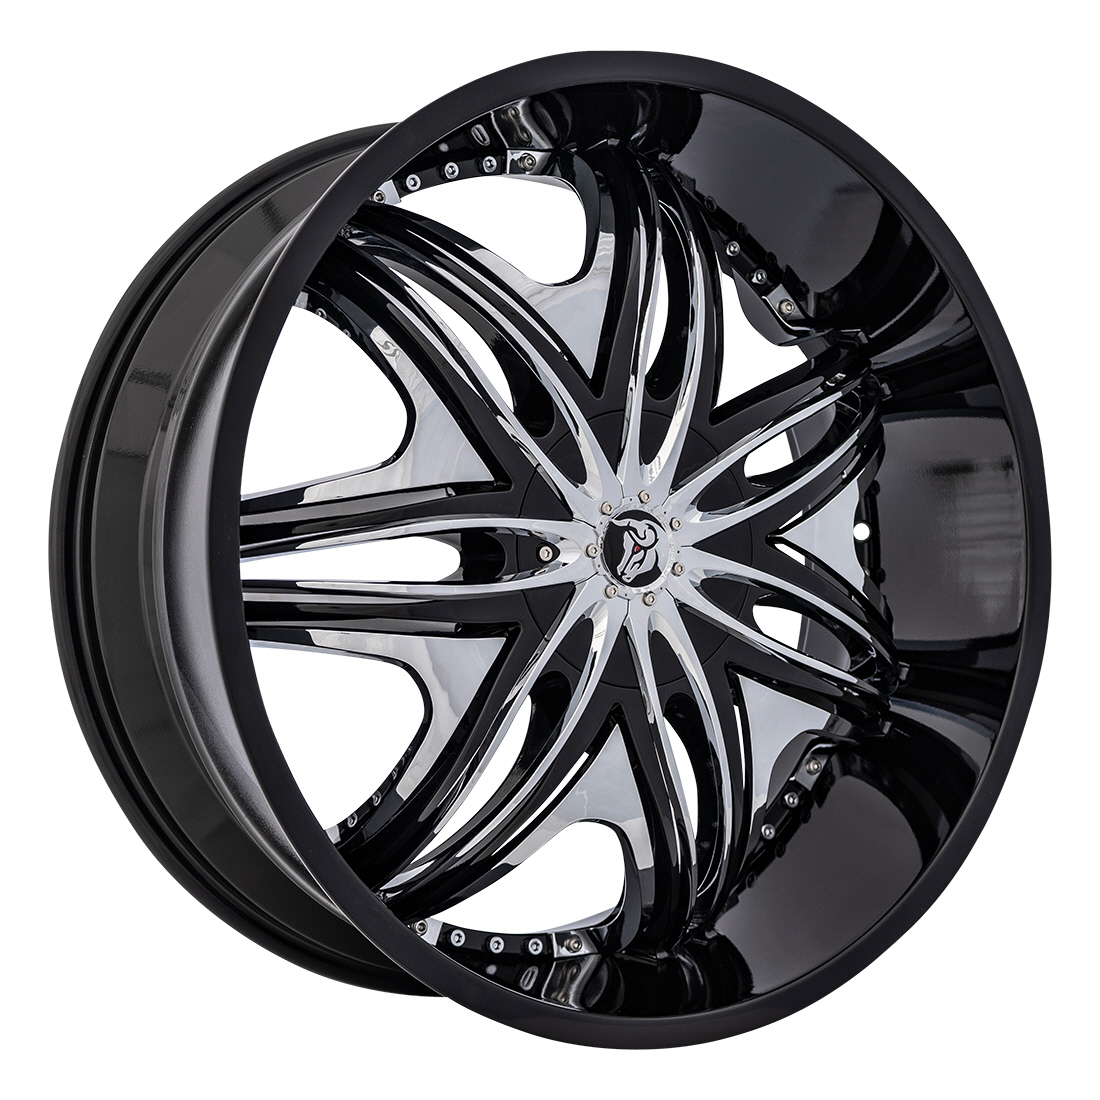 MORPHEUS  WHEELS AND RIMS PACKAGES